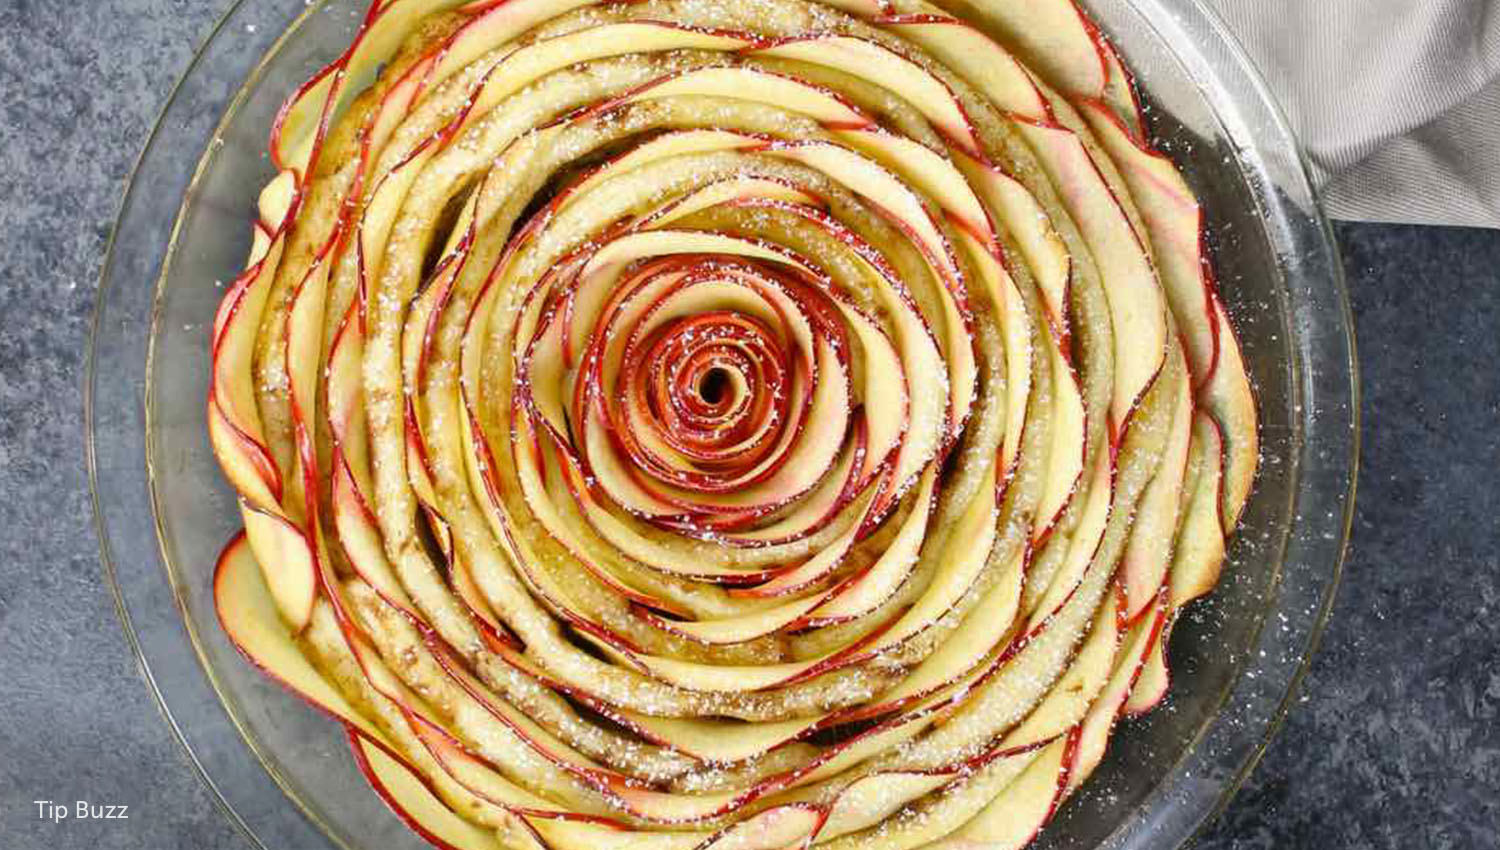 sb-50-thanksgiving-easy-cinnamon-roll-apple-rose-tart